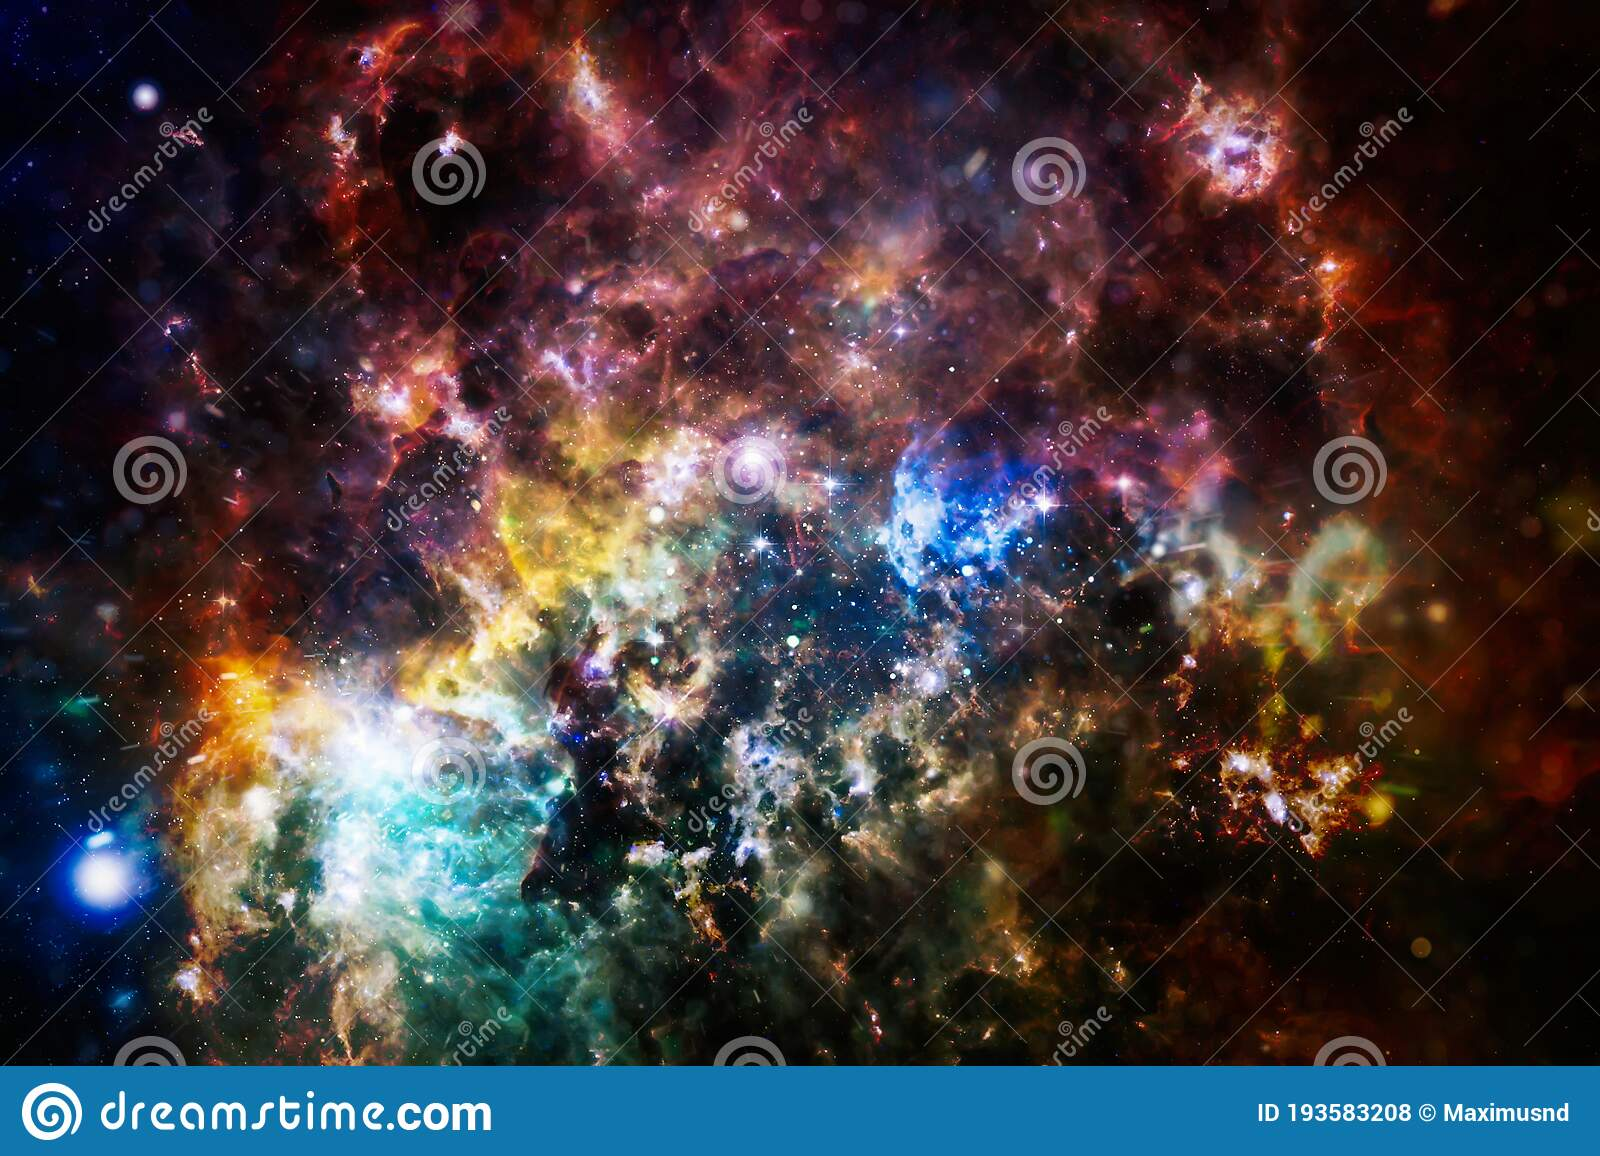 Bright Star Shining In Deep Space Stellar Explosion Behind Star Clusters High Resolution Galaxy Background Elements Of This Stock Illustration Illustration Of Background Galaxy 193583208 Follow the vibe and change your wallpaper every day! dreamstime com